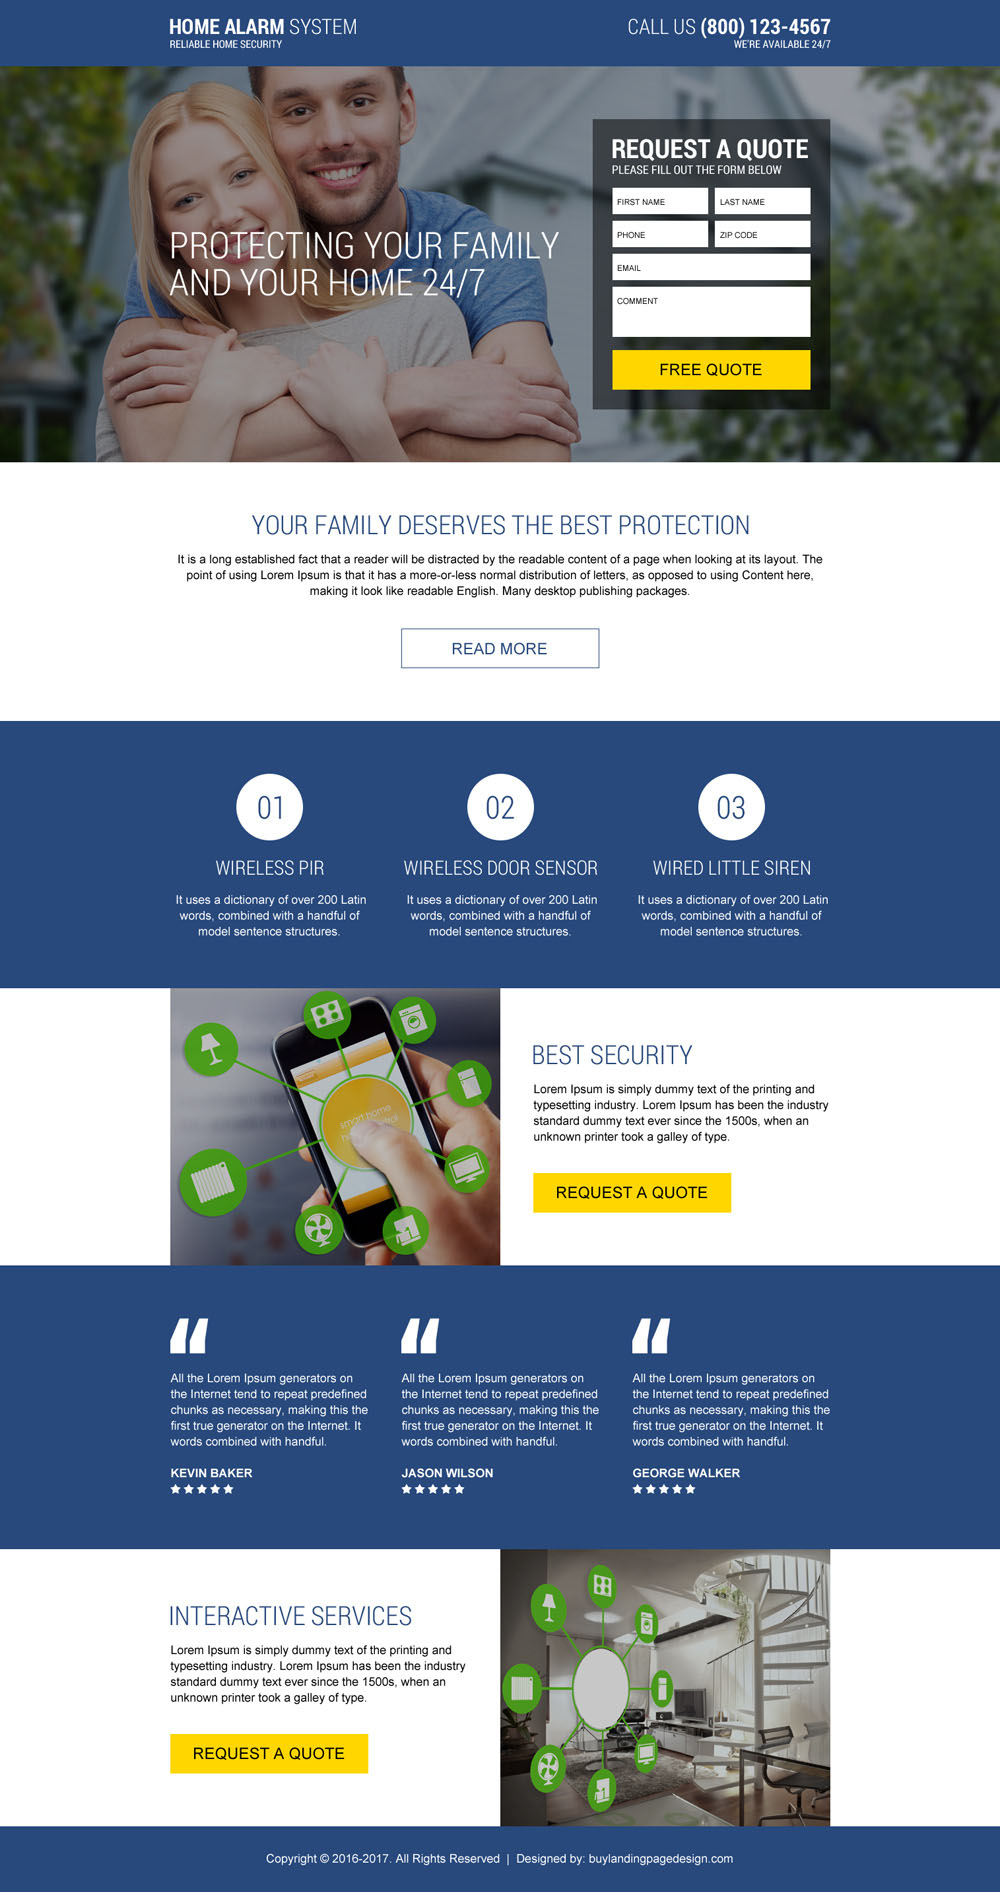 home-alarm-security-systems-request-a-free-quote-landing-page-design-009